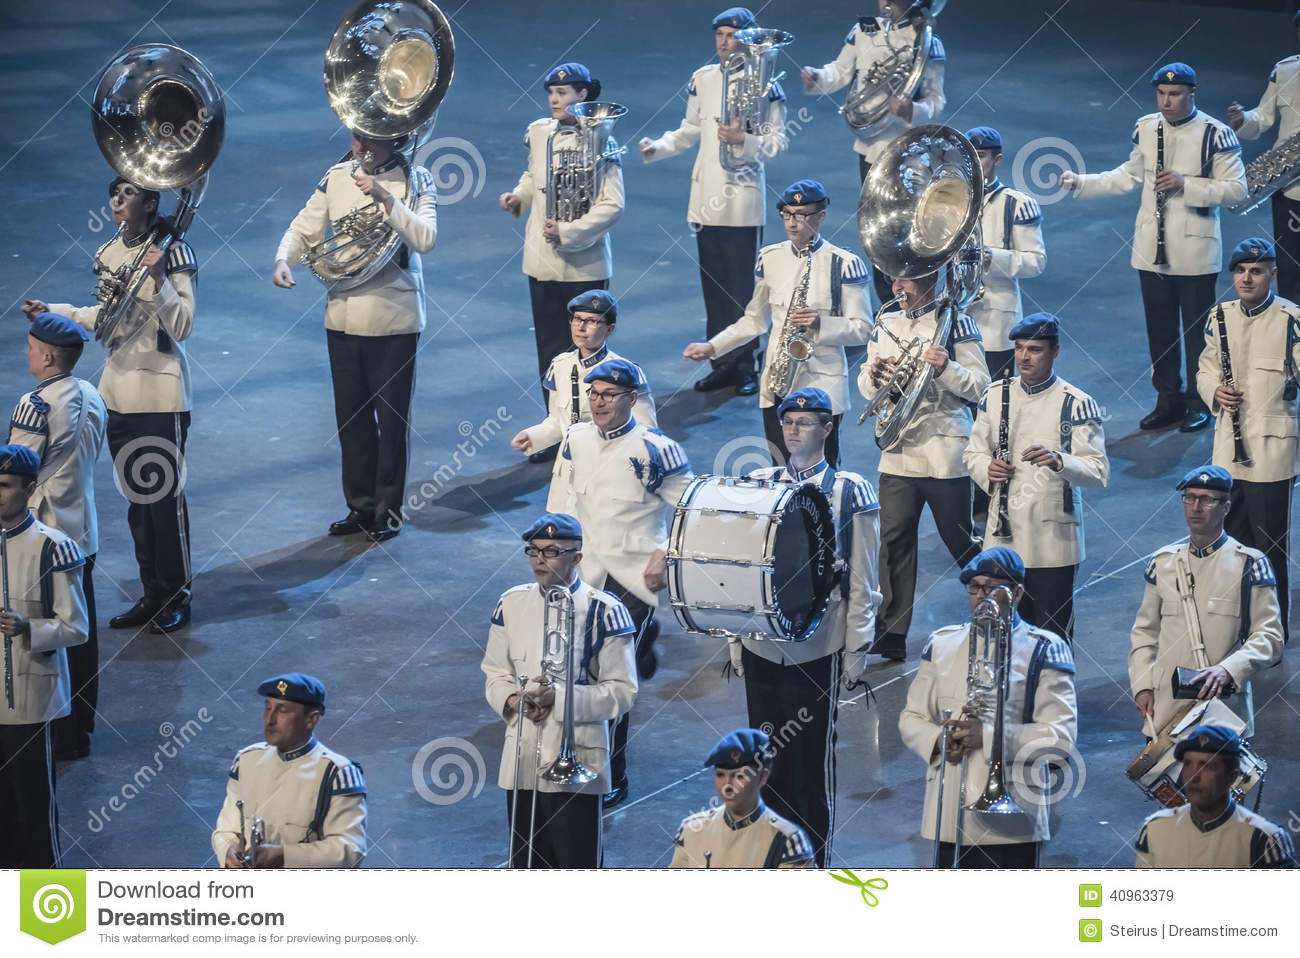 Norwegian Military Tattoo 8 May 2014 Editorial Stock Image Image Of Army 2014 40963379